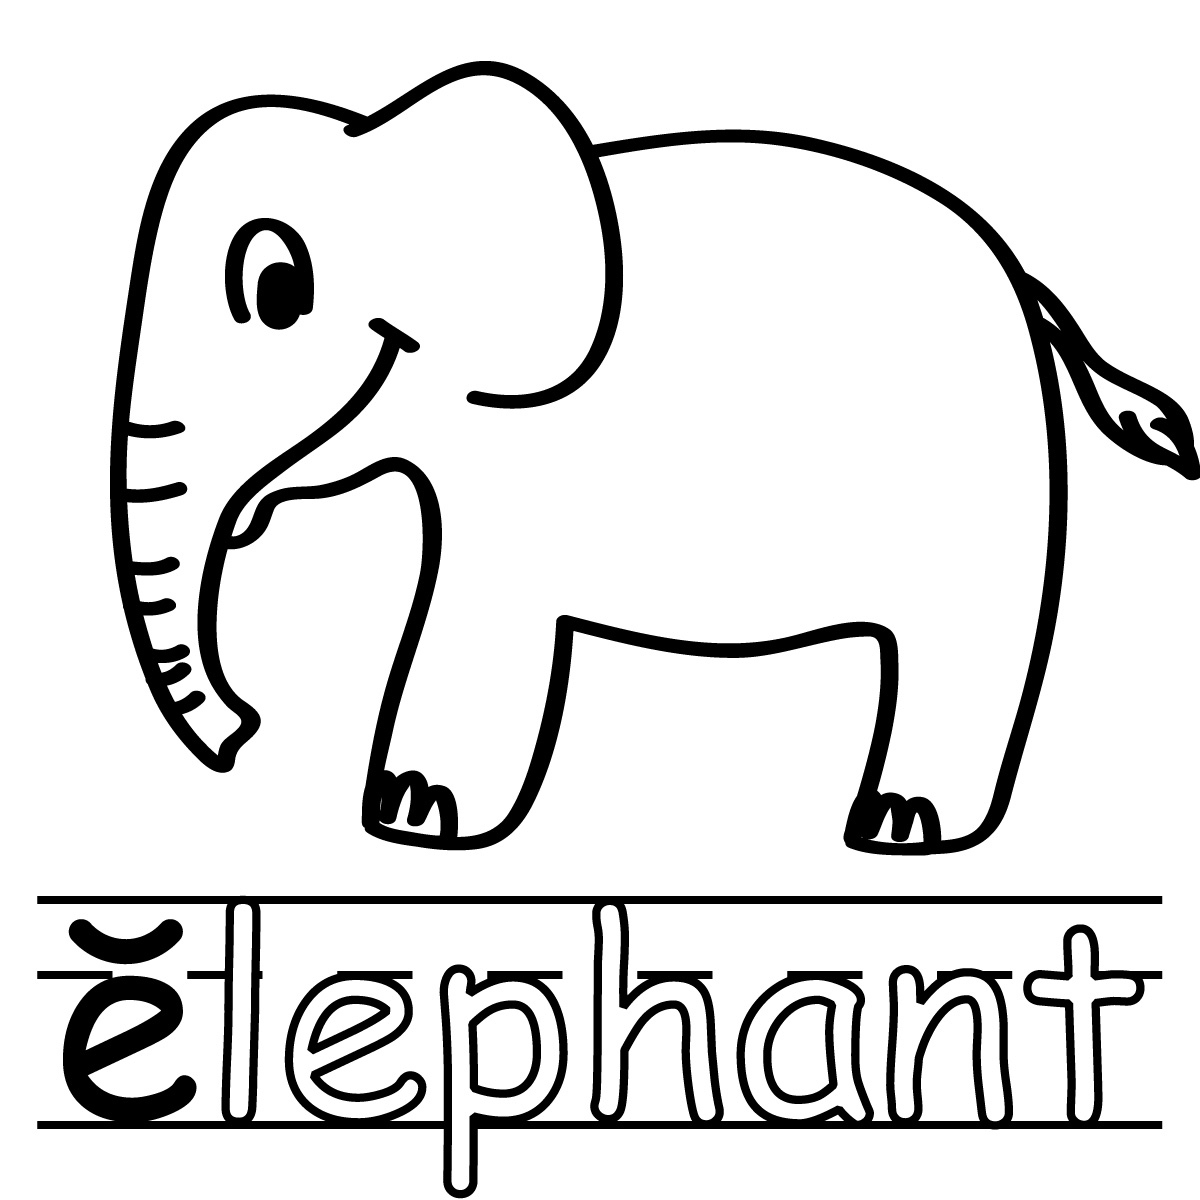 15 Best Images Of Short Letter E Worksheets